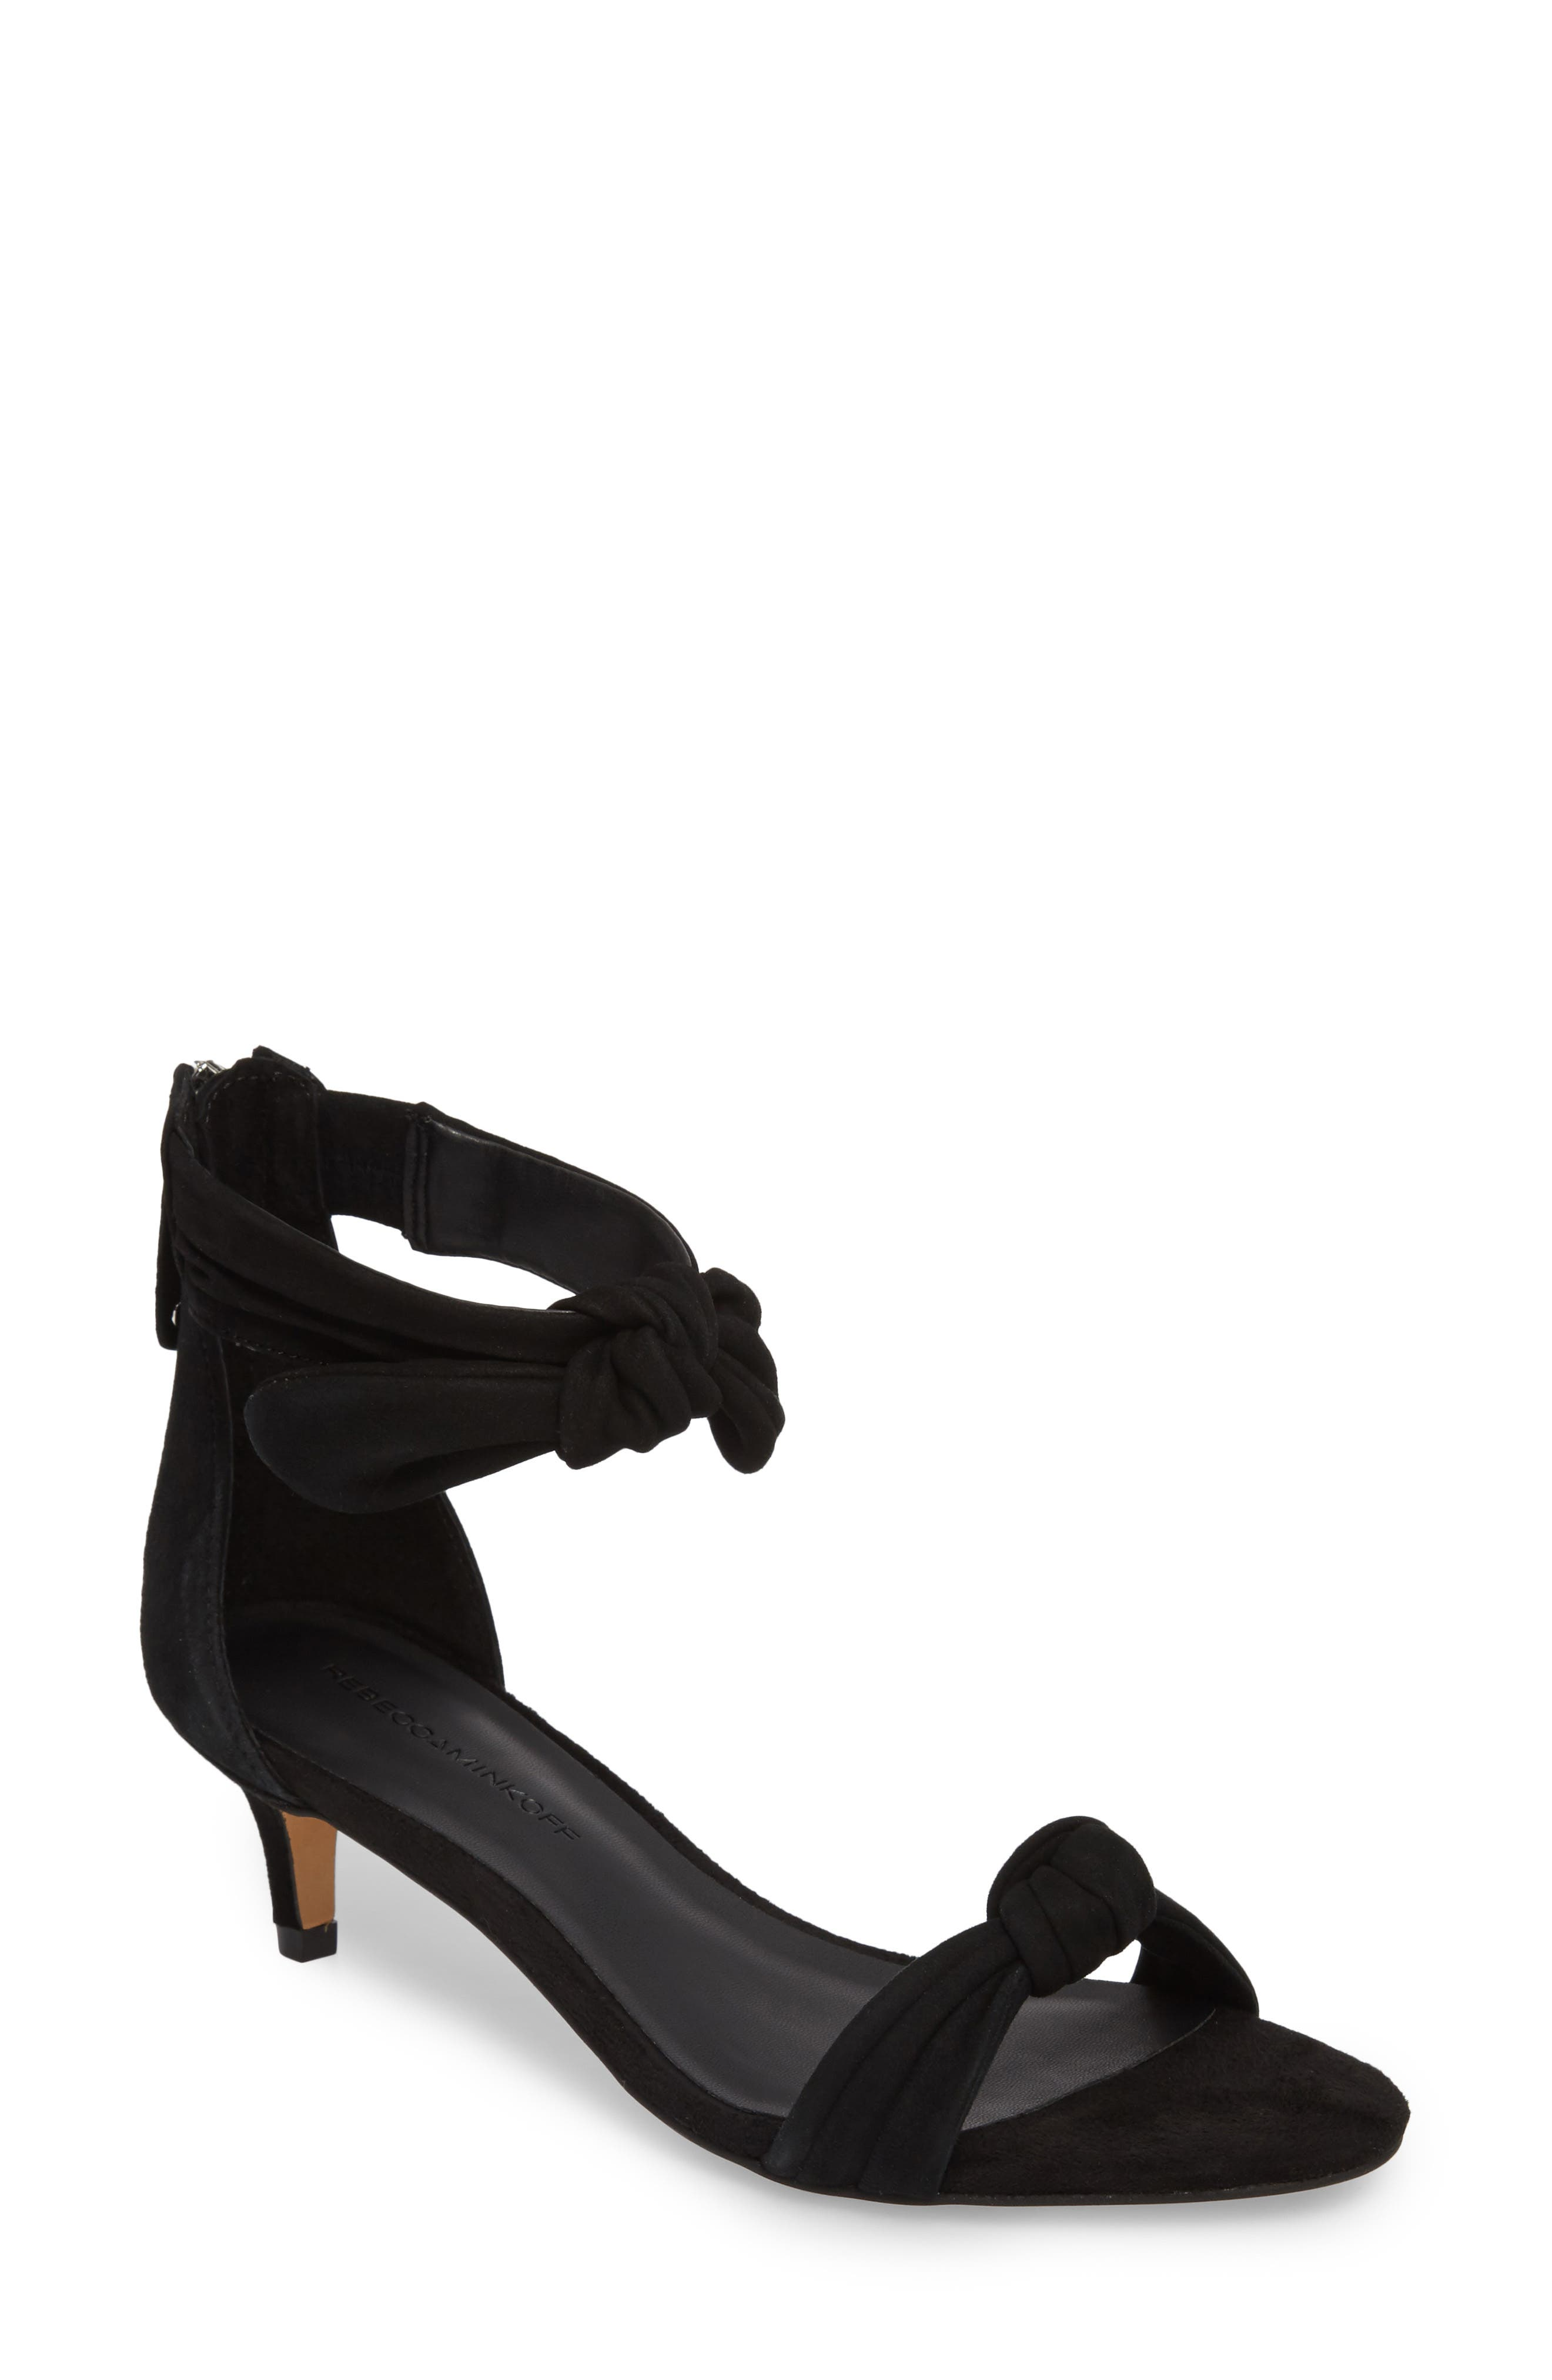 Kaley Knotted Kitten Heel Sandal,                             Main thumbnail 1, color,                             BLACK SUEDE